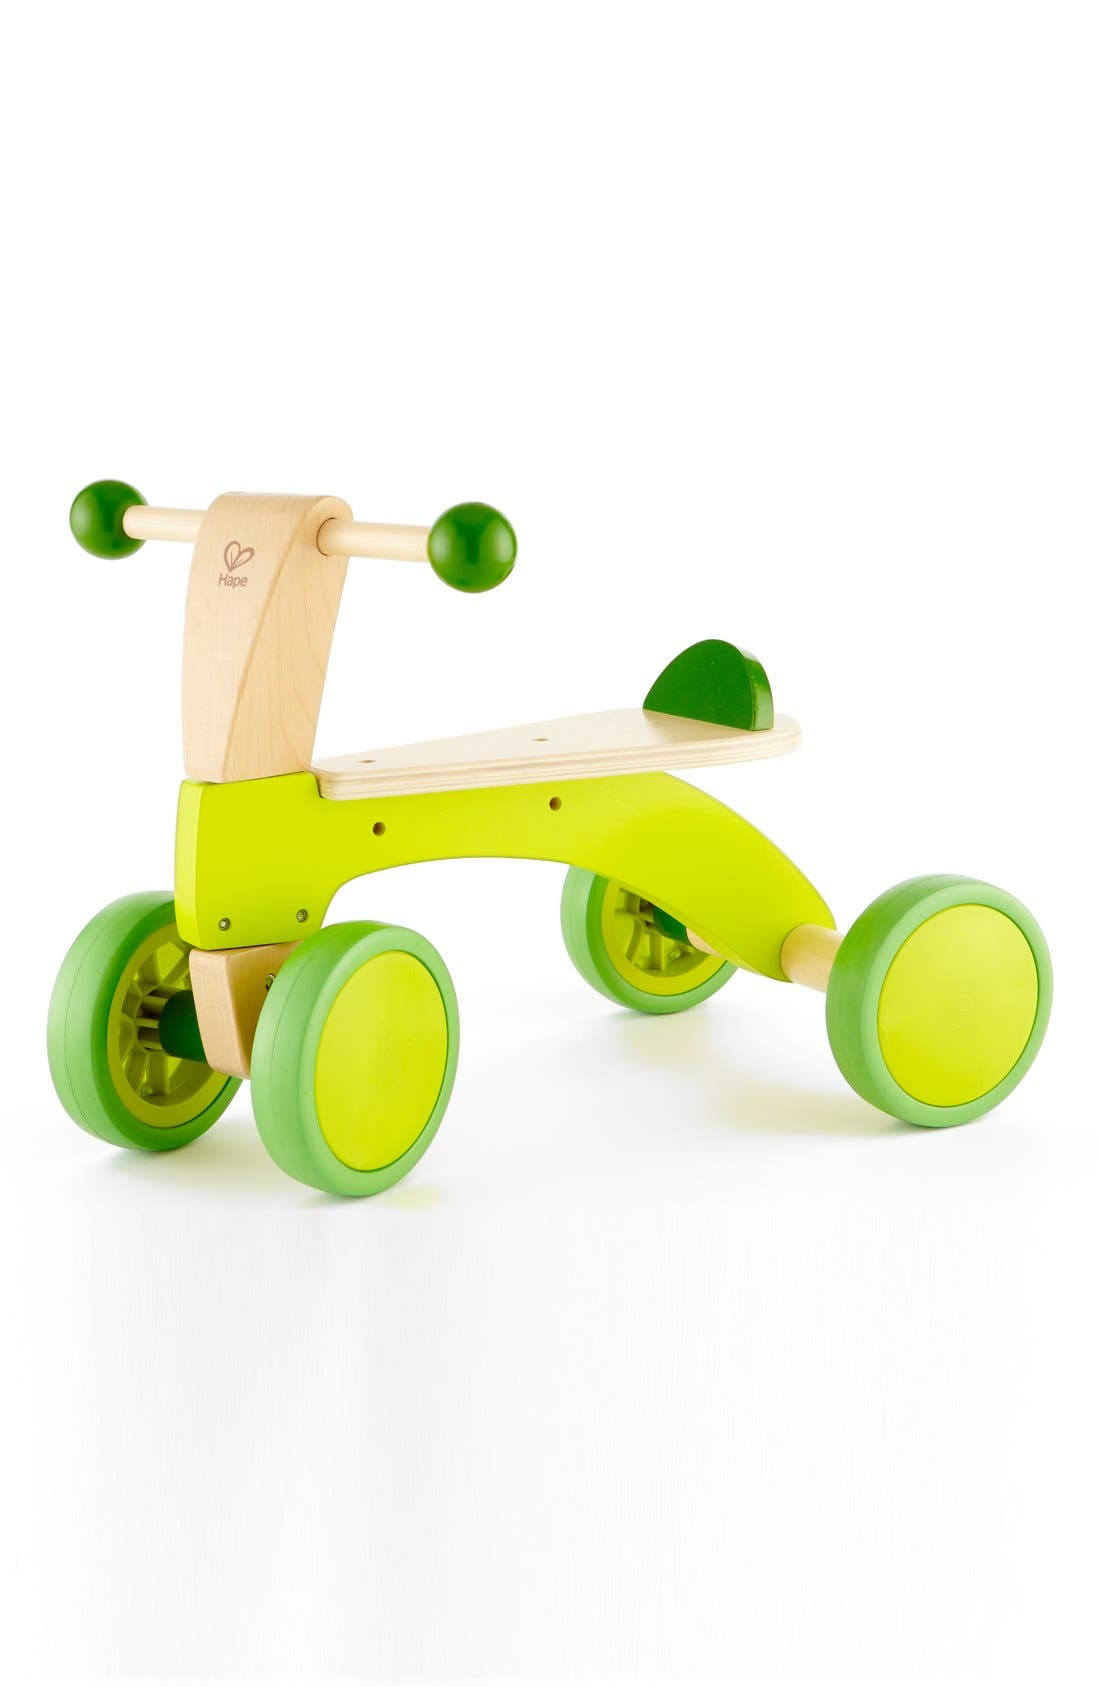 'Scoot-Around' Riding Toy,                             Main thumbnail 1, color,                             Green